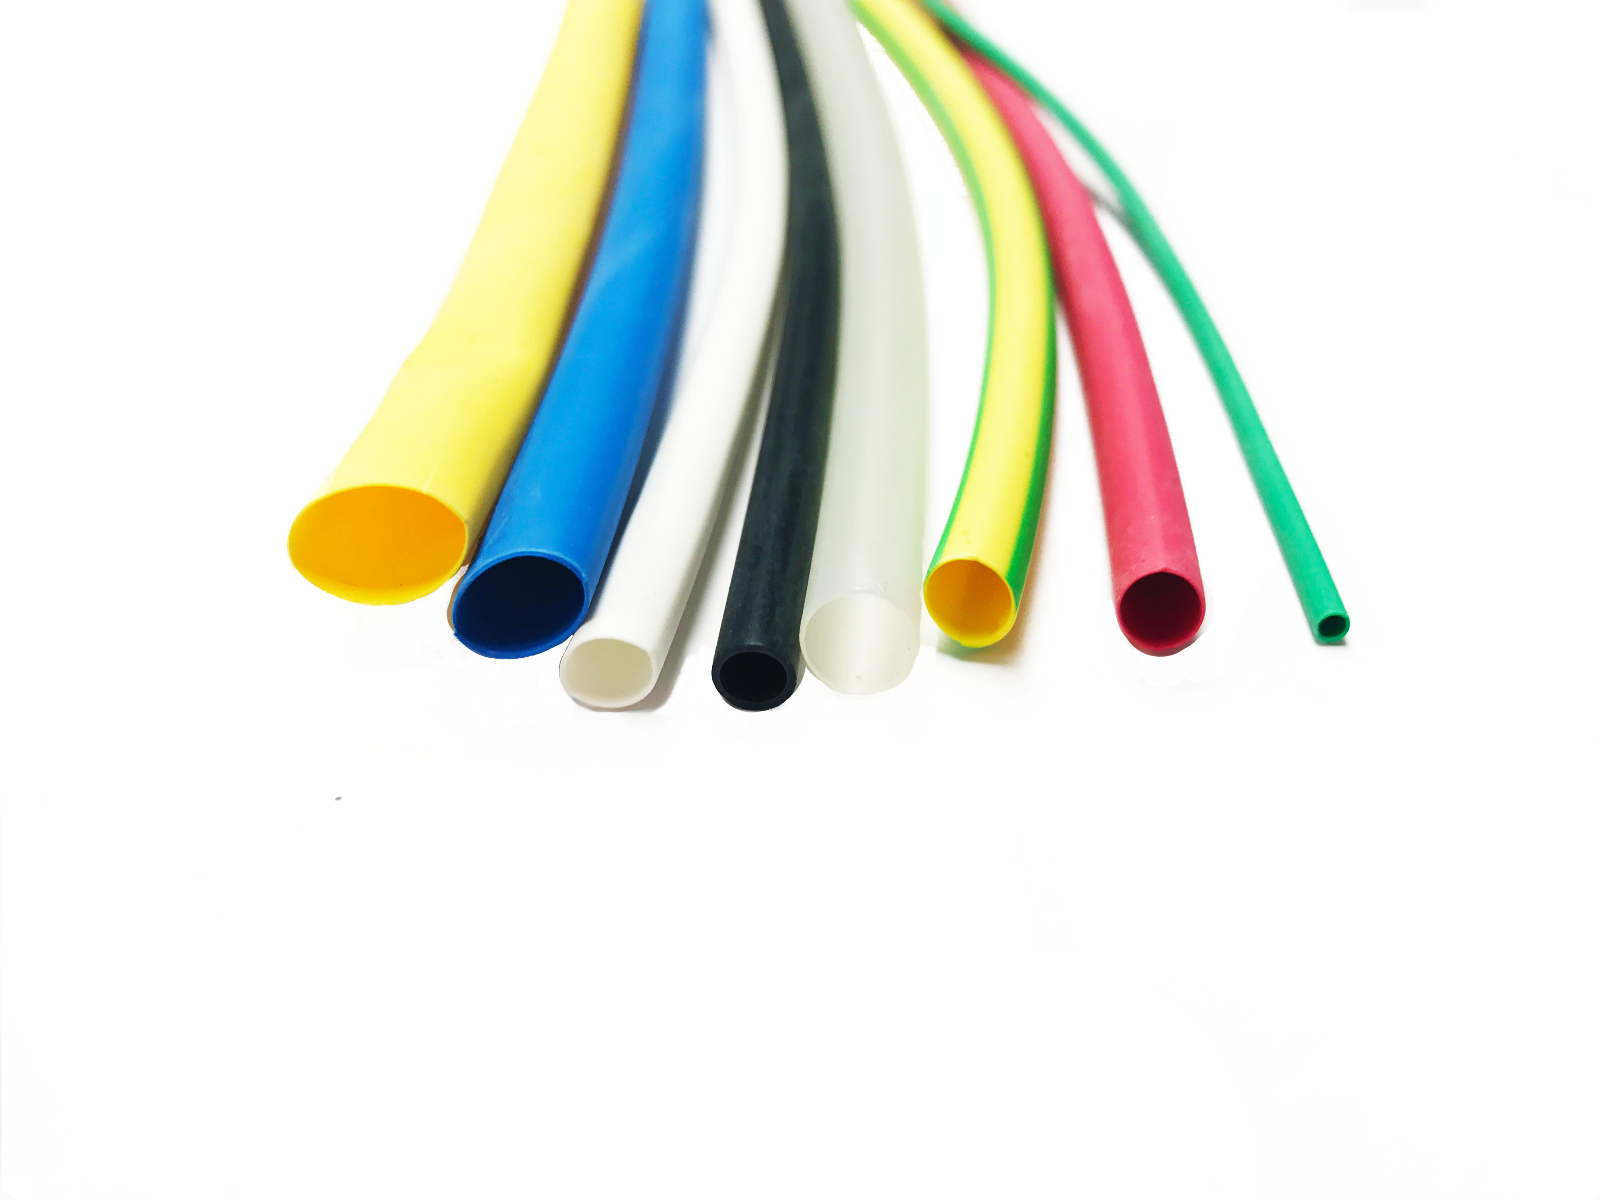 Cable Tubing and sleeving products